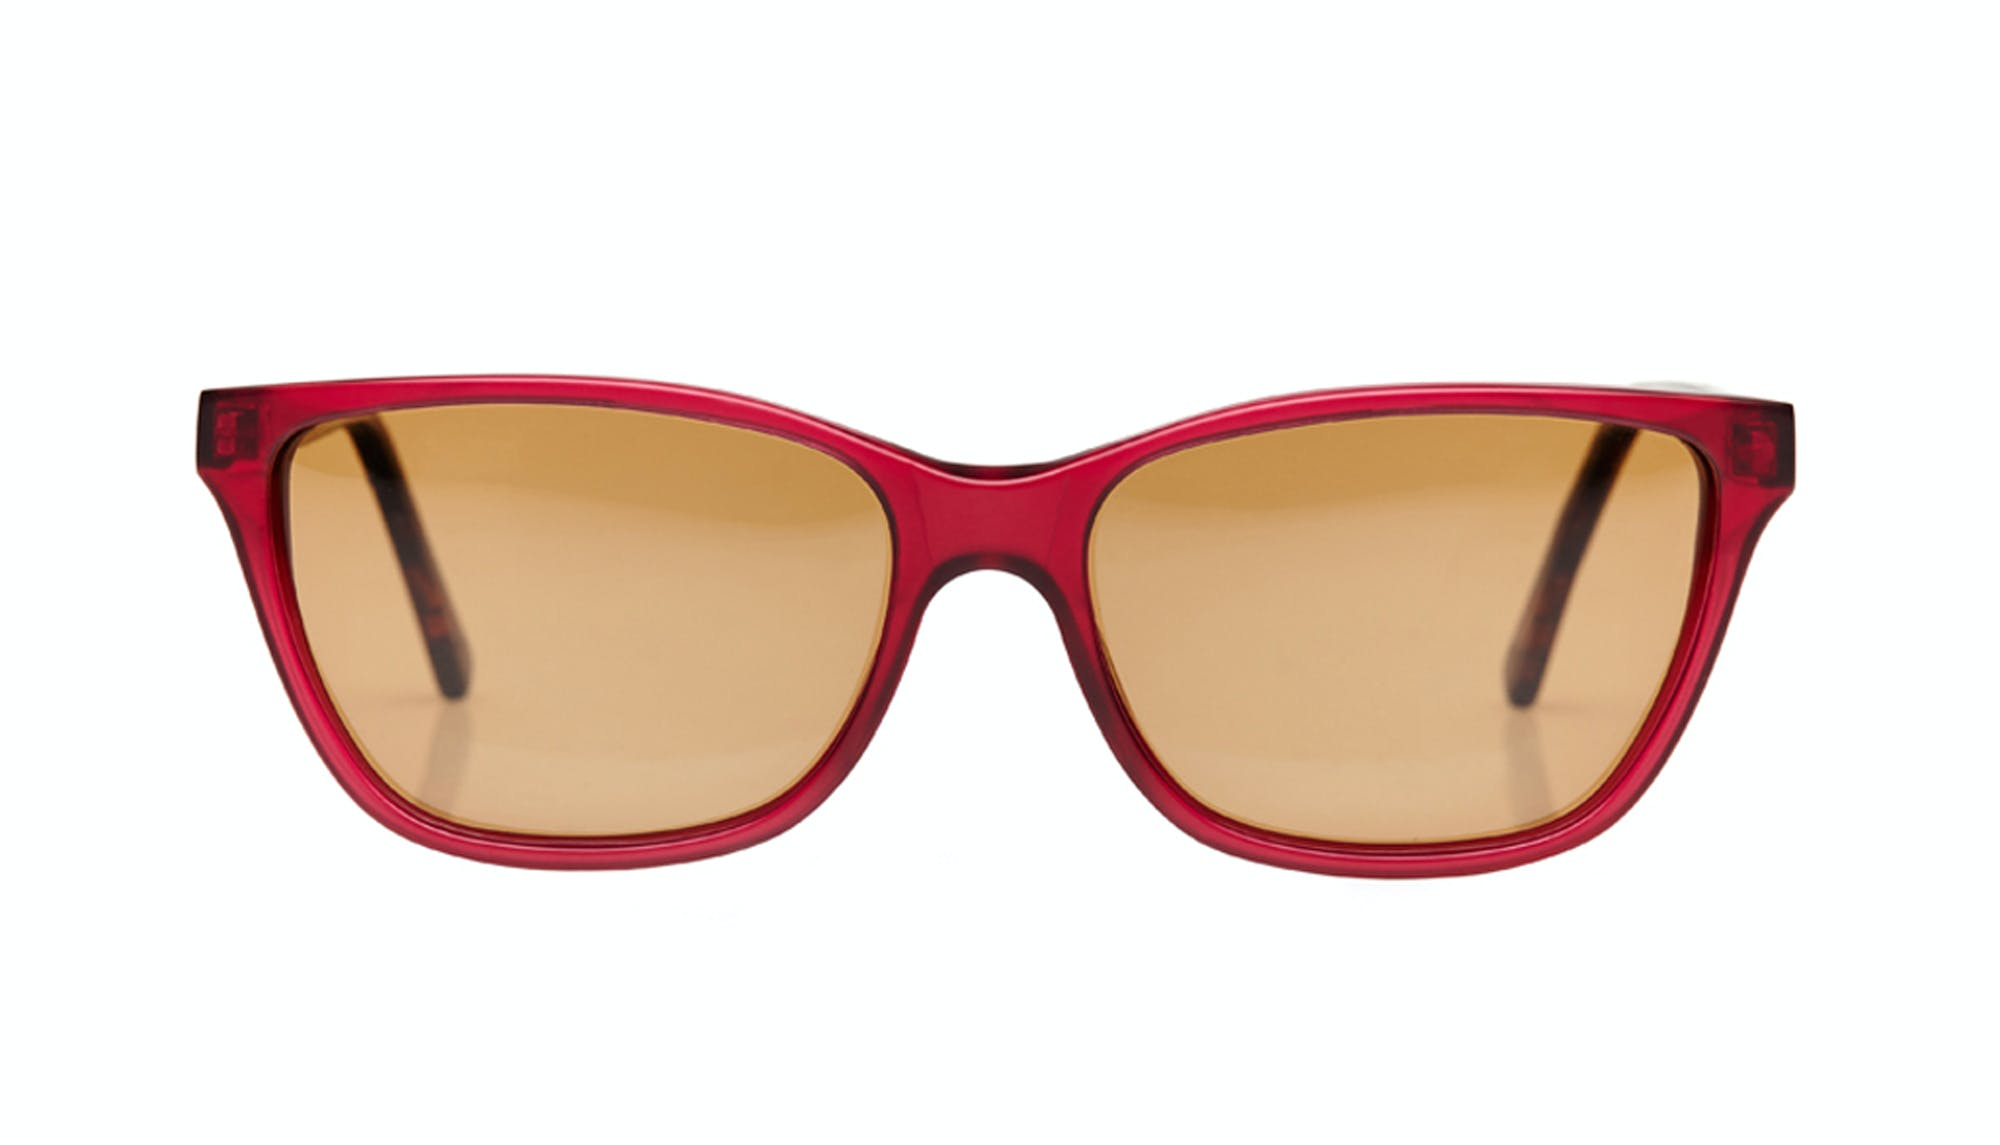 Affordable Fashion Glasses Rectangle Sunglasses Women Honeybadger Frosted Cherry Front